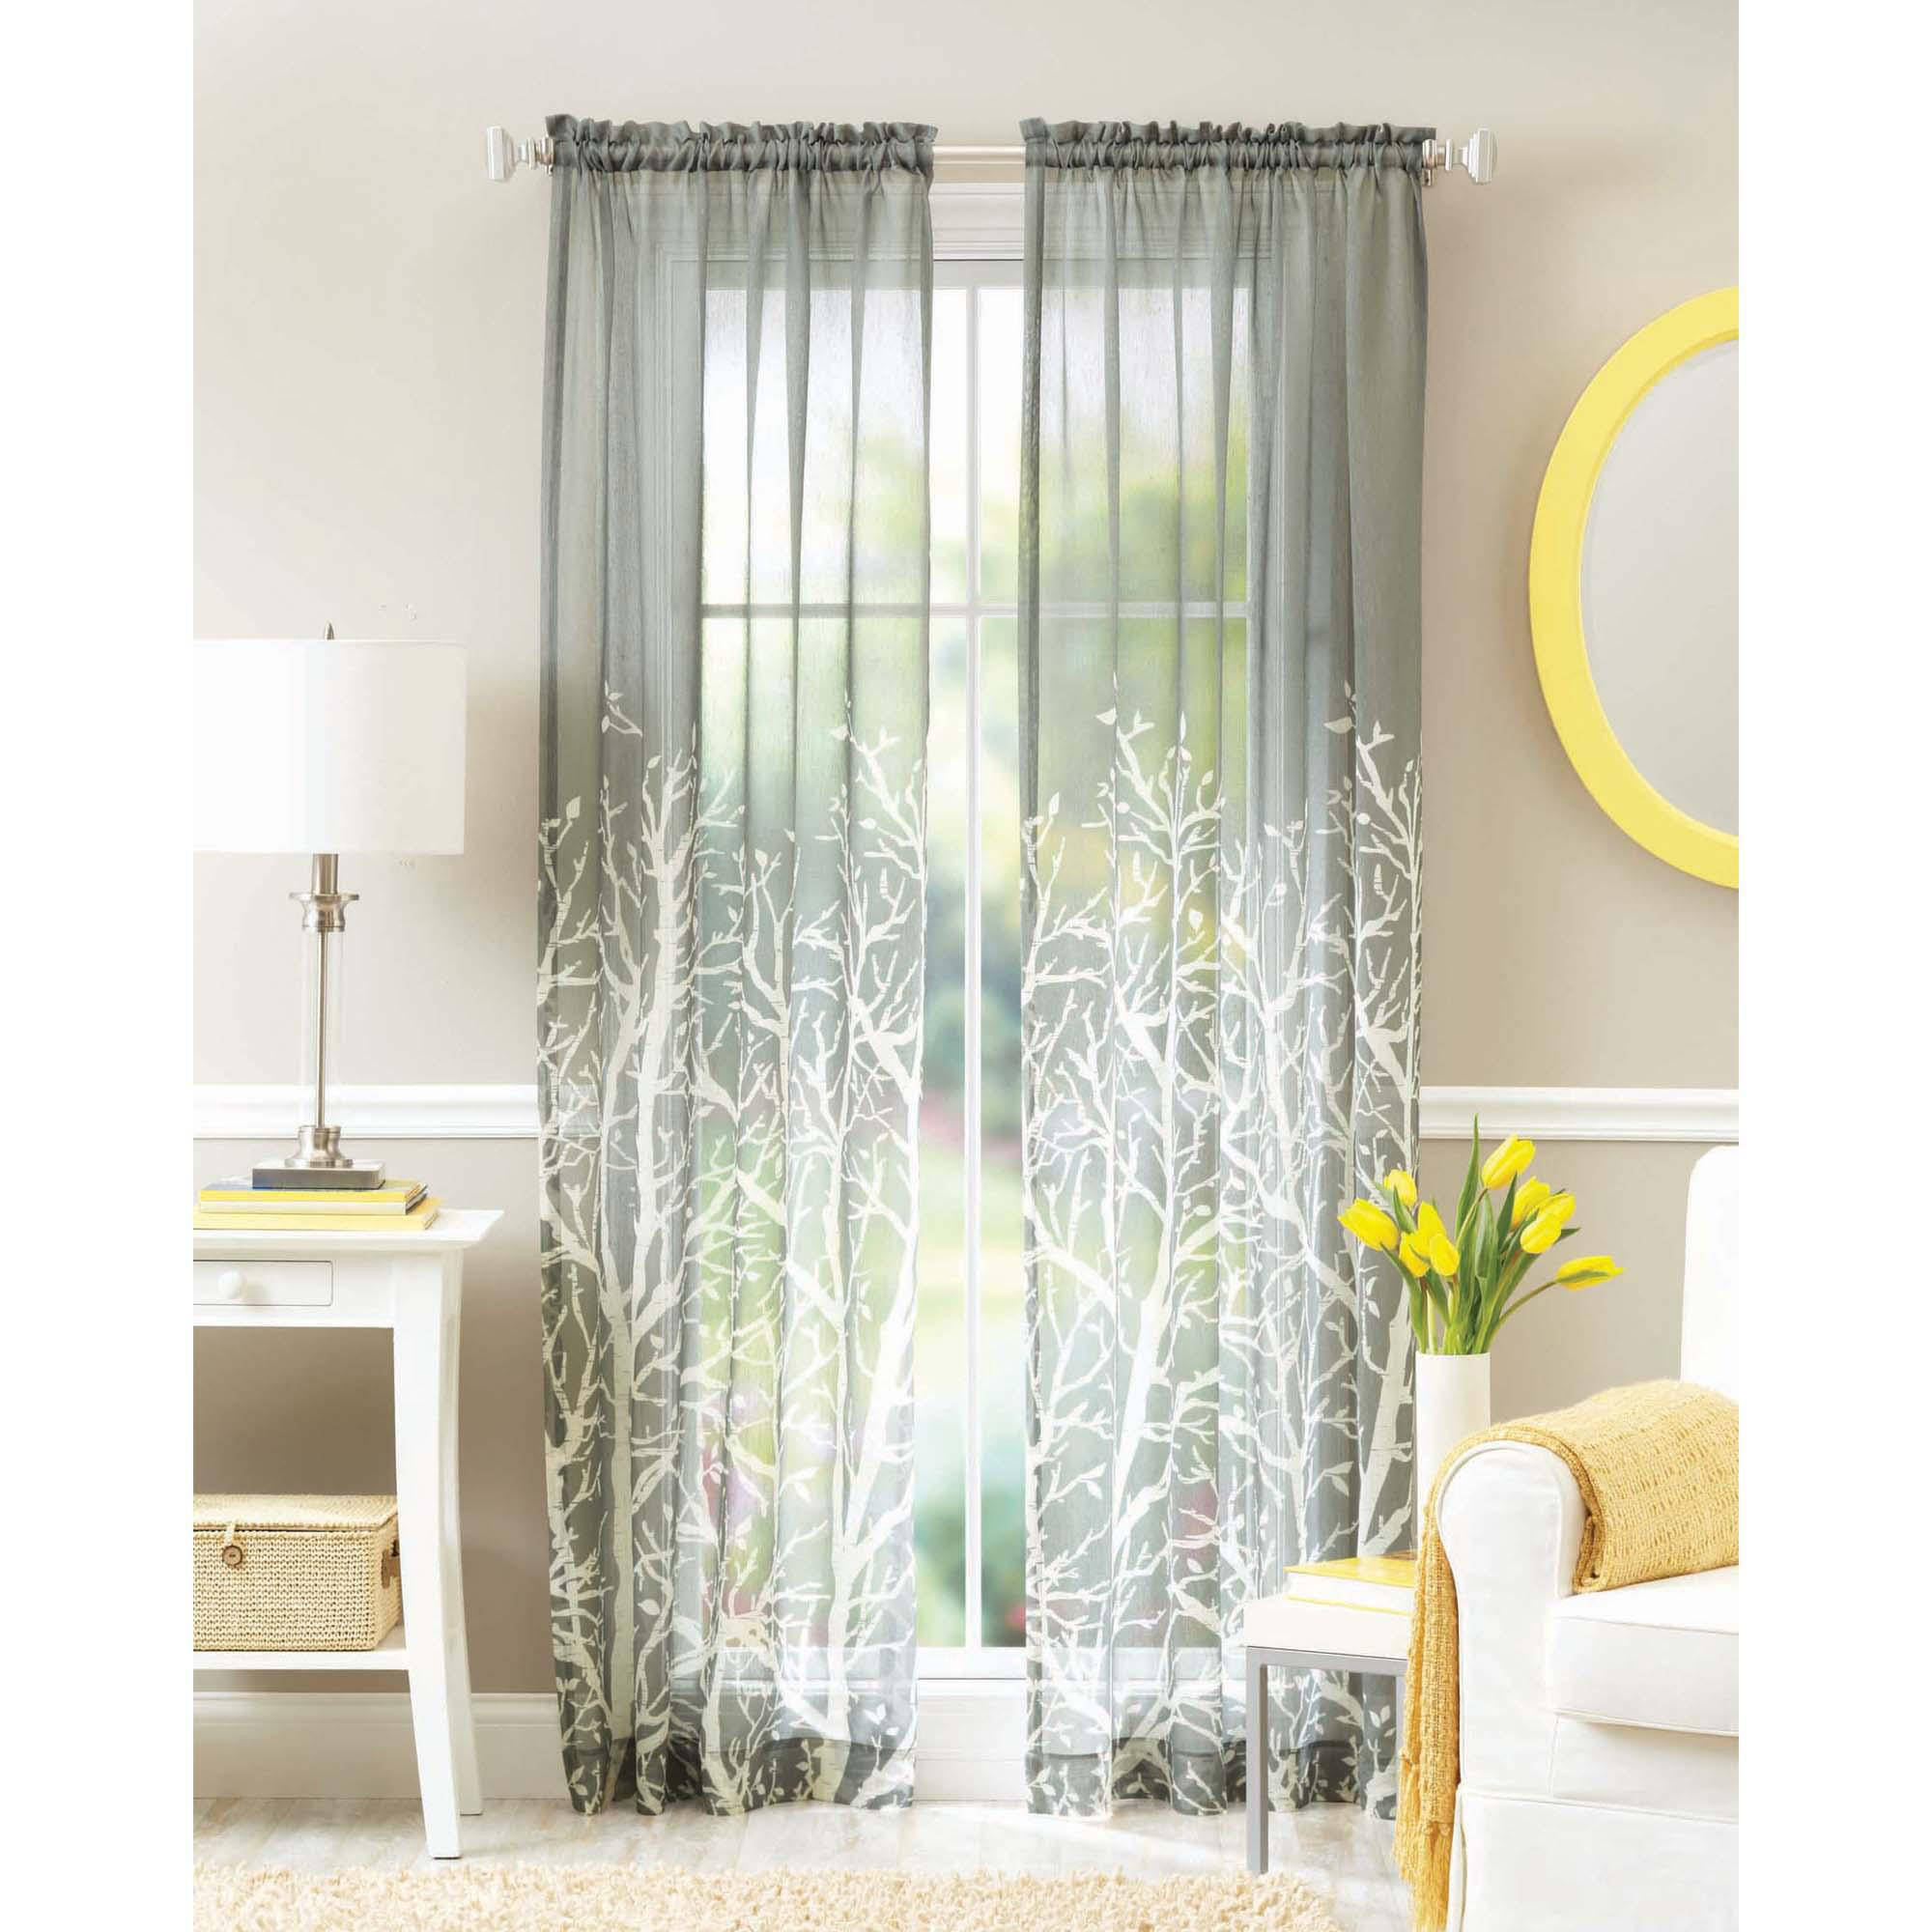 Pictures of Better Homes and Gardens Arbor Springs Semi-Sheer Window Panel sheer window panels